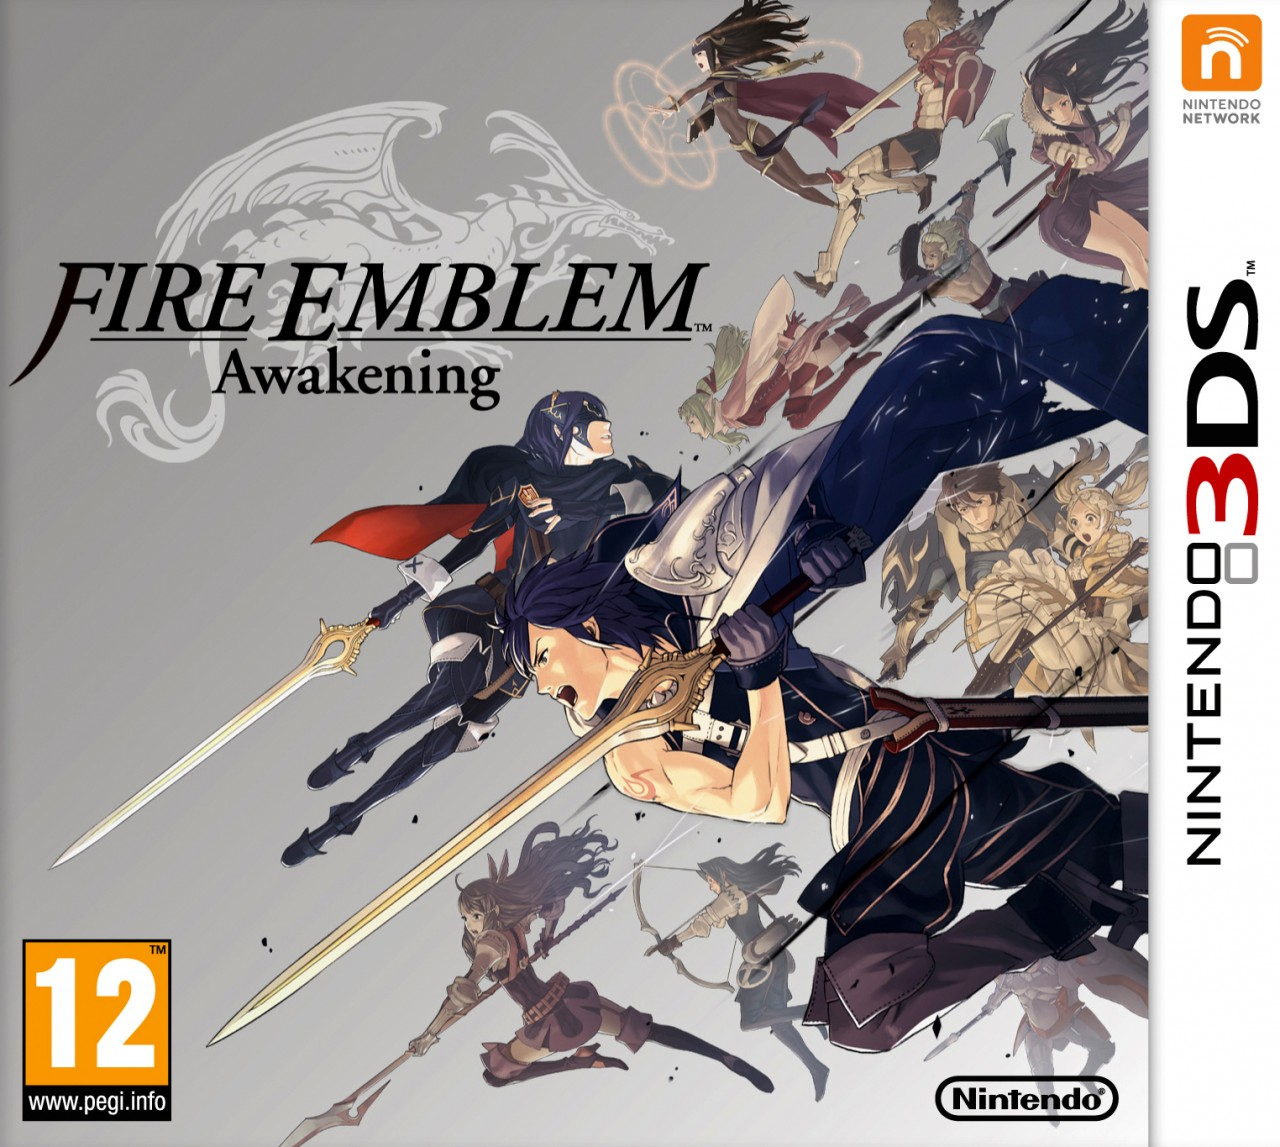 Share your Fire emblem awakening very valuable